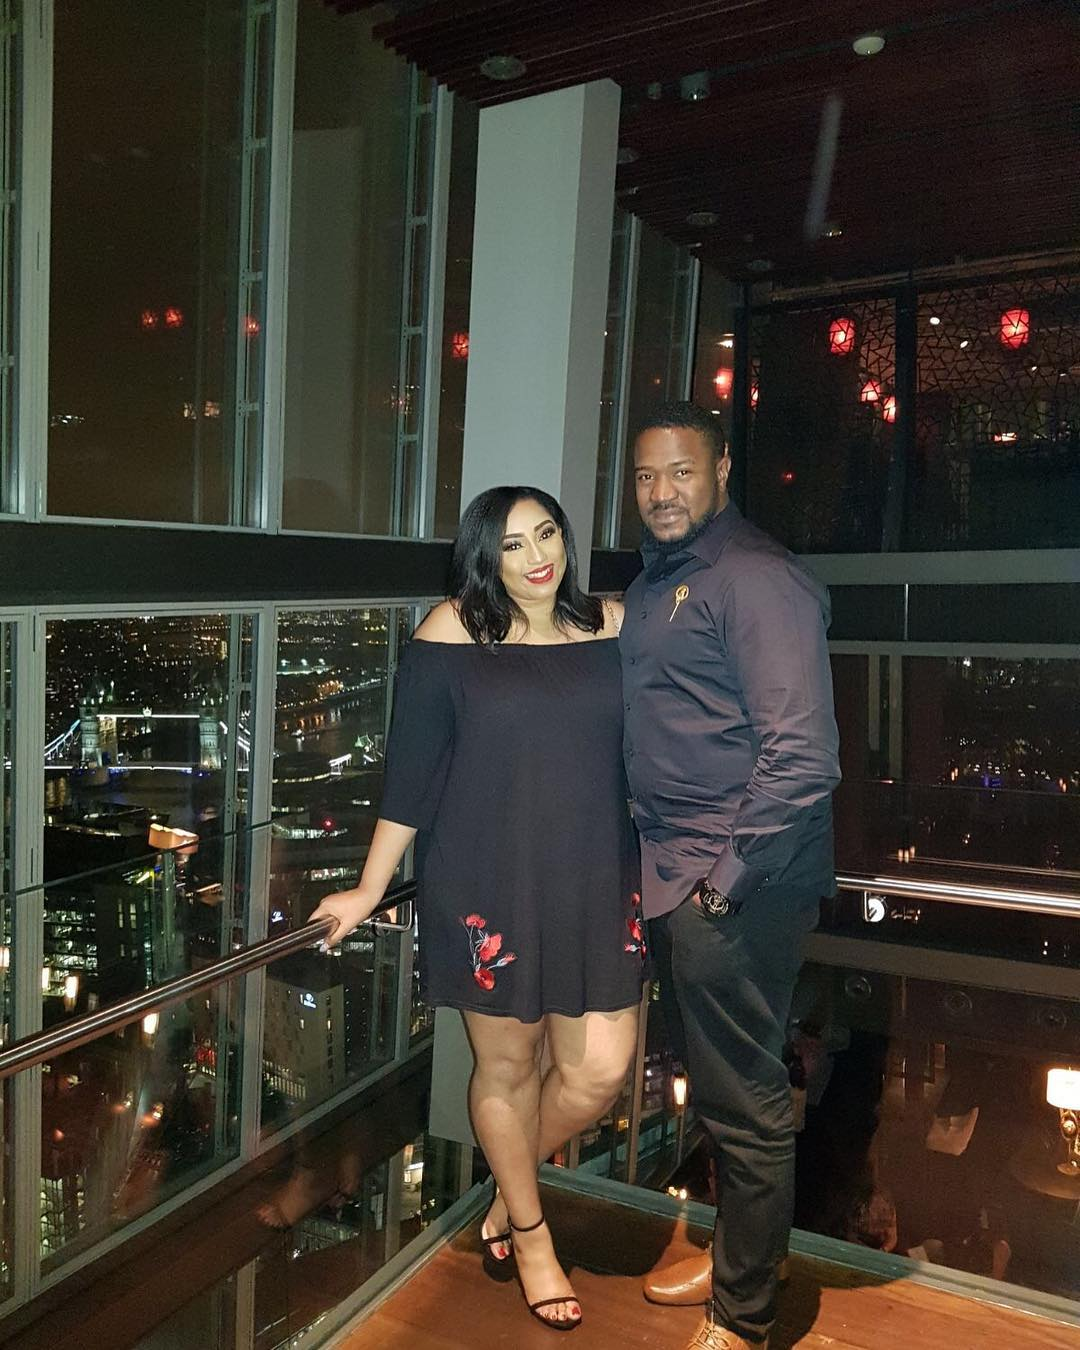 """ac0c6ebb0e9a93033d1d6c04be3042c8 - """"I am happy, hurting & healing at the same time,"""" - Mofe Duncan's ex-wife says, months after marriage crashed"""